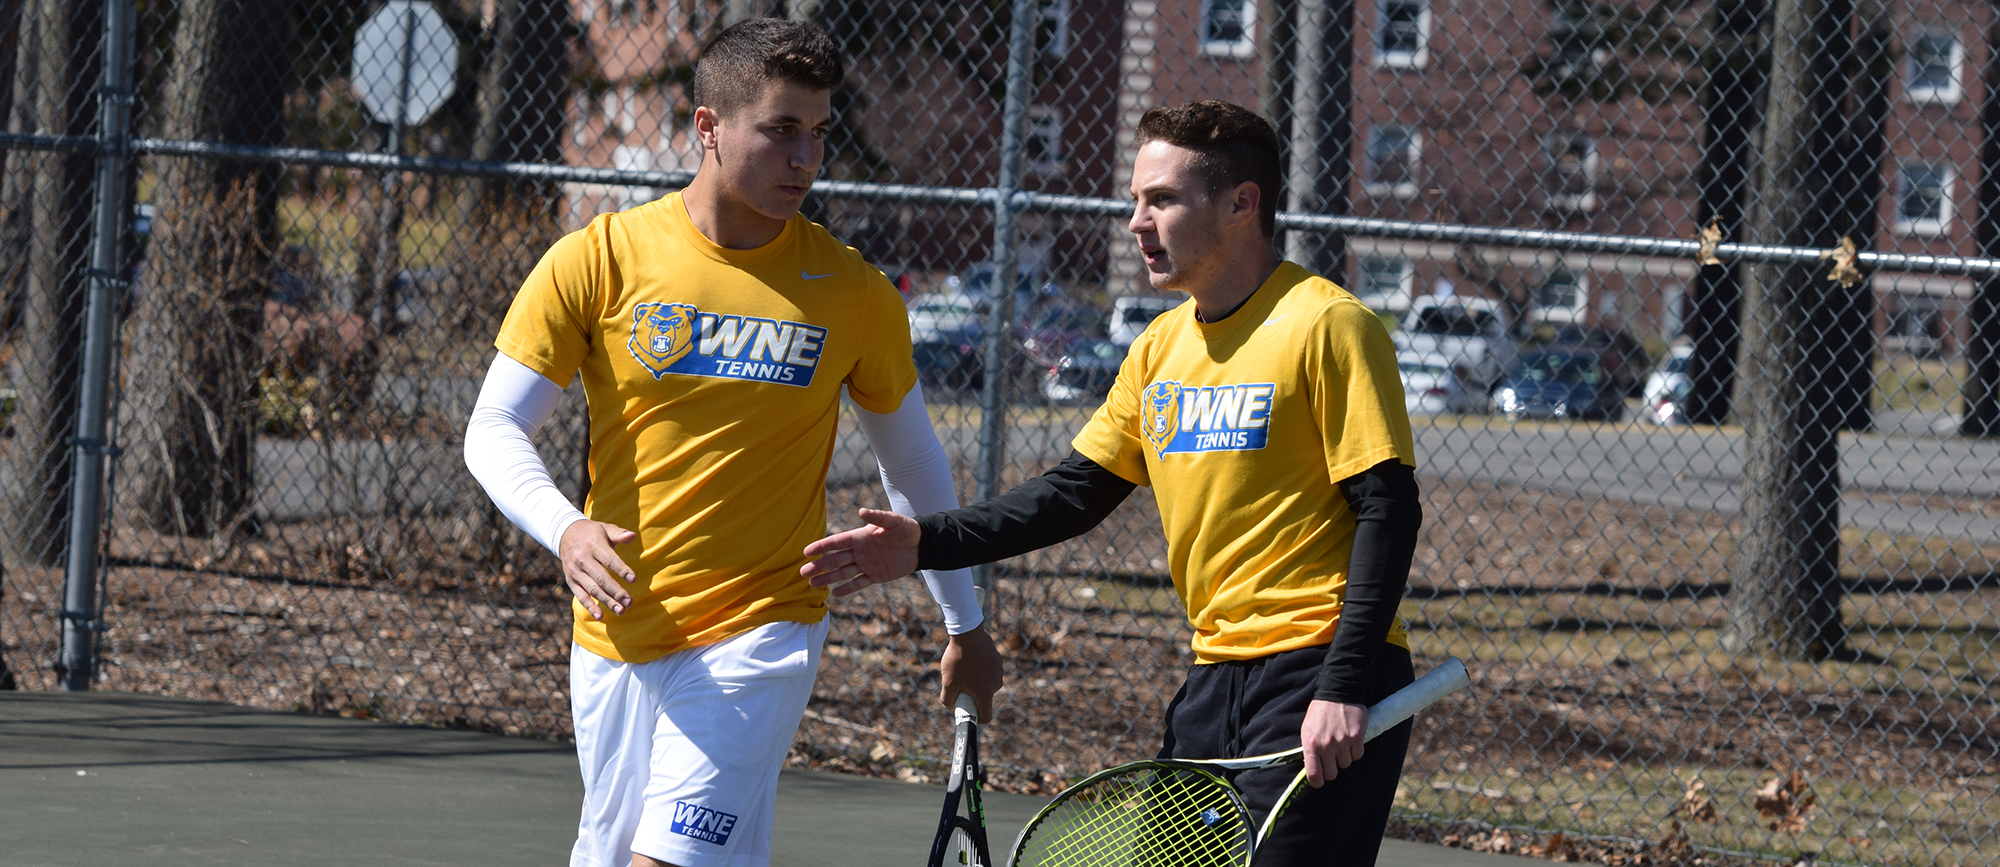 David Kalmer & Justin Kohut won their No. 1 doubles matchup, and also picked up wins in singles play as WNE defeated Roger Williams 7-2 on Saturday. (Photo by Rachael Margossian)